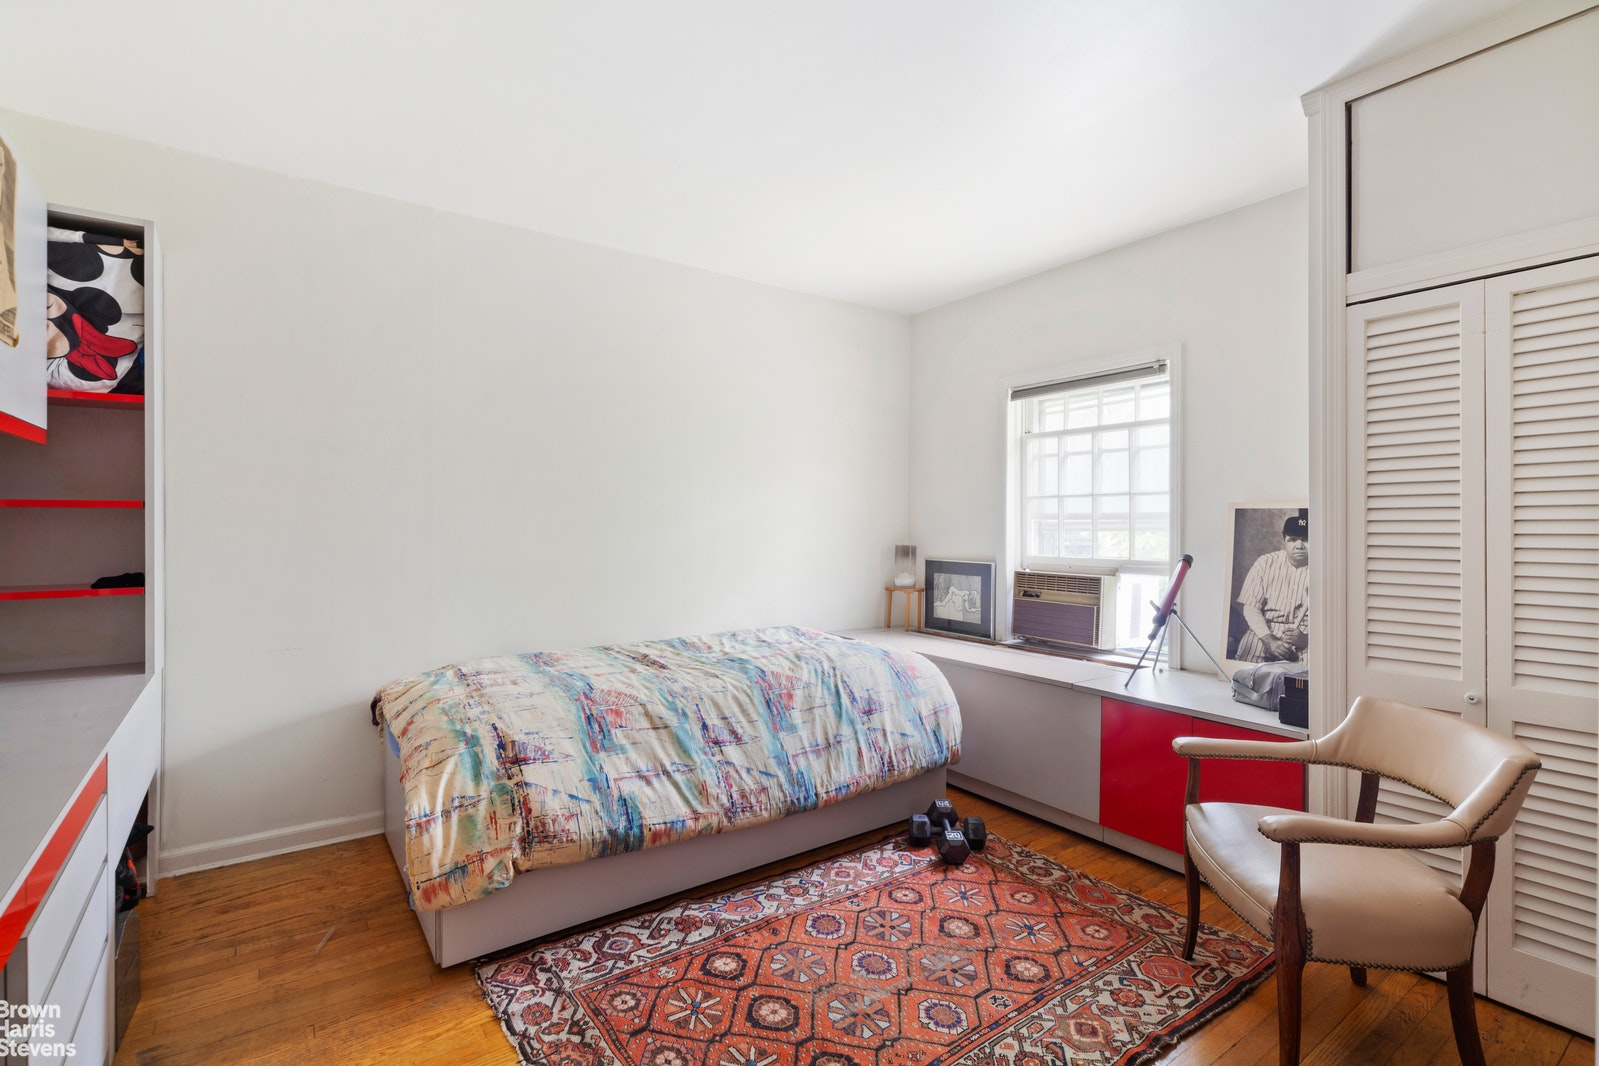 16 Verandah Place, Cobble Hill, Brooklyn, NY, 11201, $4,995,000, Property For Sale, Halstead Real Estate, Photo 12